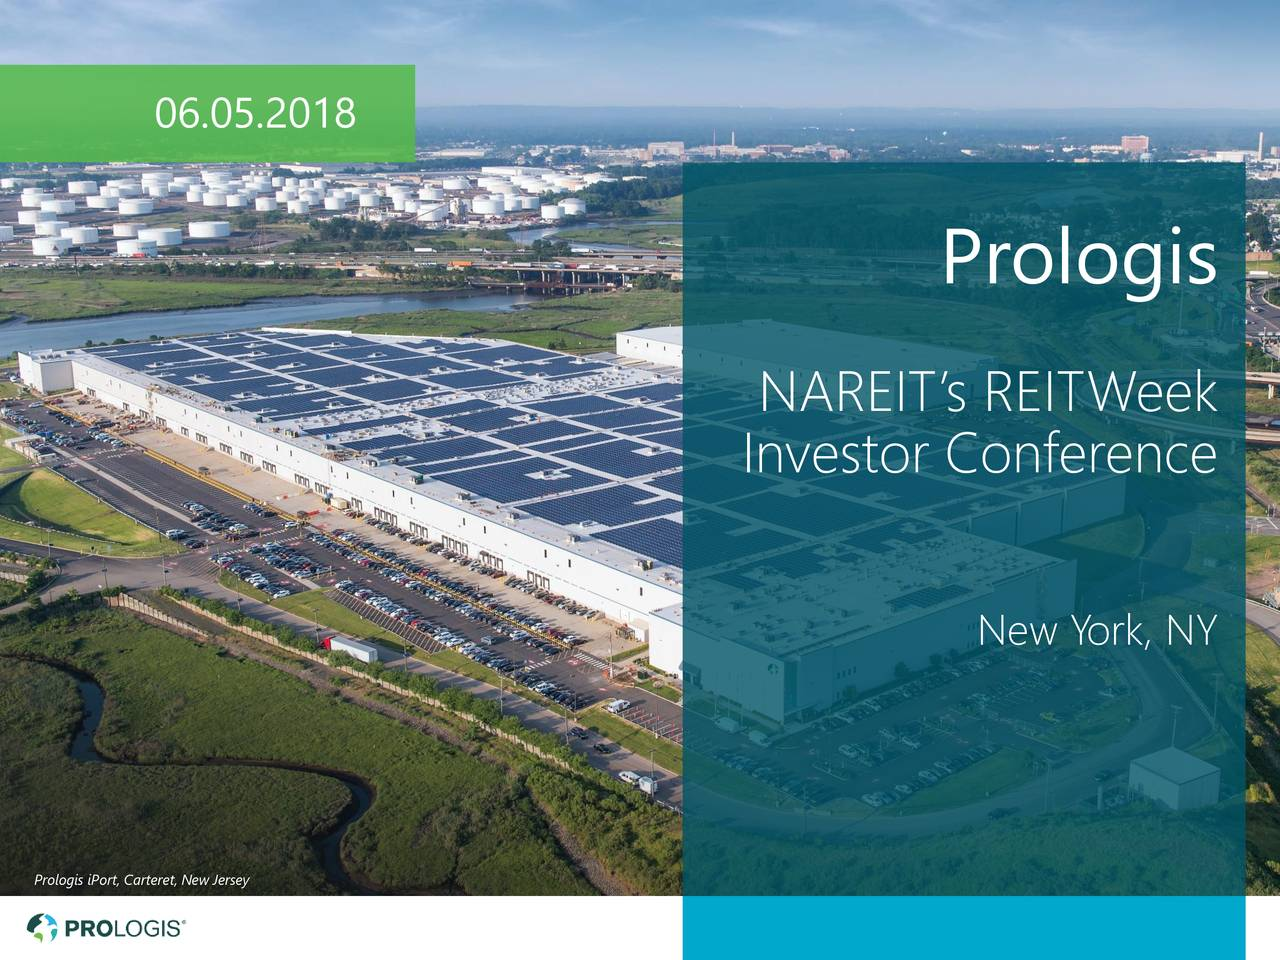 Prologis NAREIT's REITWeek Investor Conference New York, NY Prologis iPort, Carteret, New Jersey